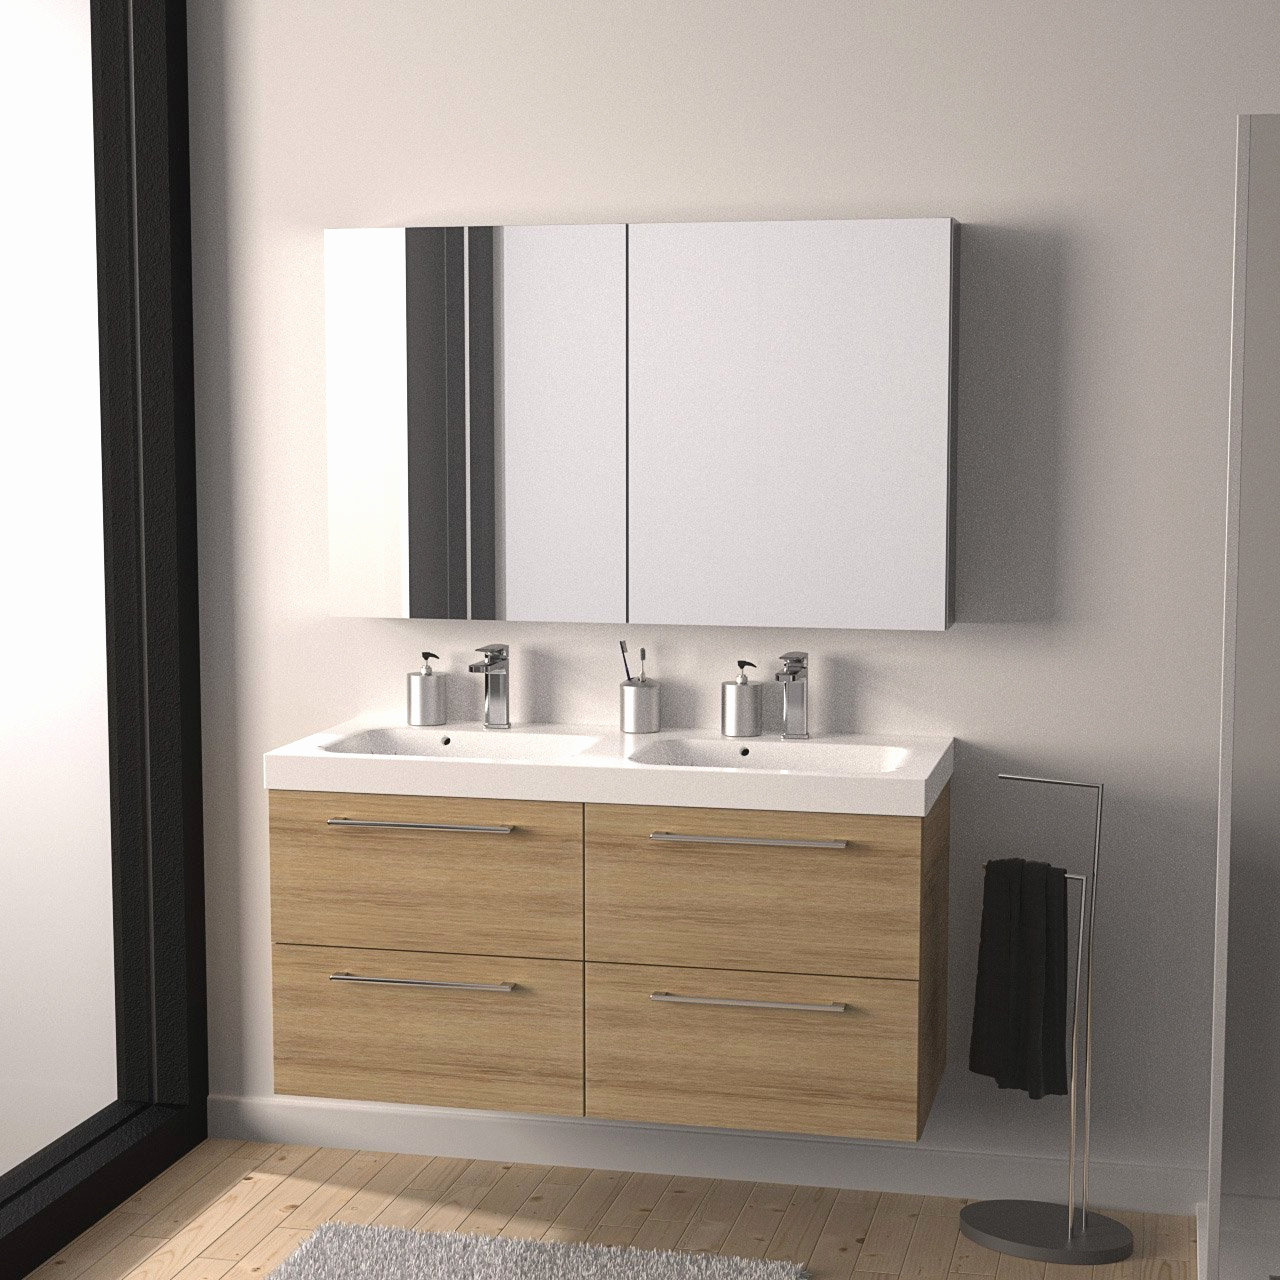 Lave Main Angle Leroy Merlin Luxe Images Salle Bain Leroy Merlin Luxe Meuble Lave Main Leroy Merlin Od Up